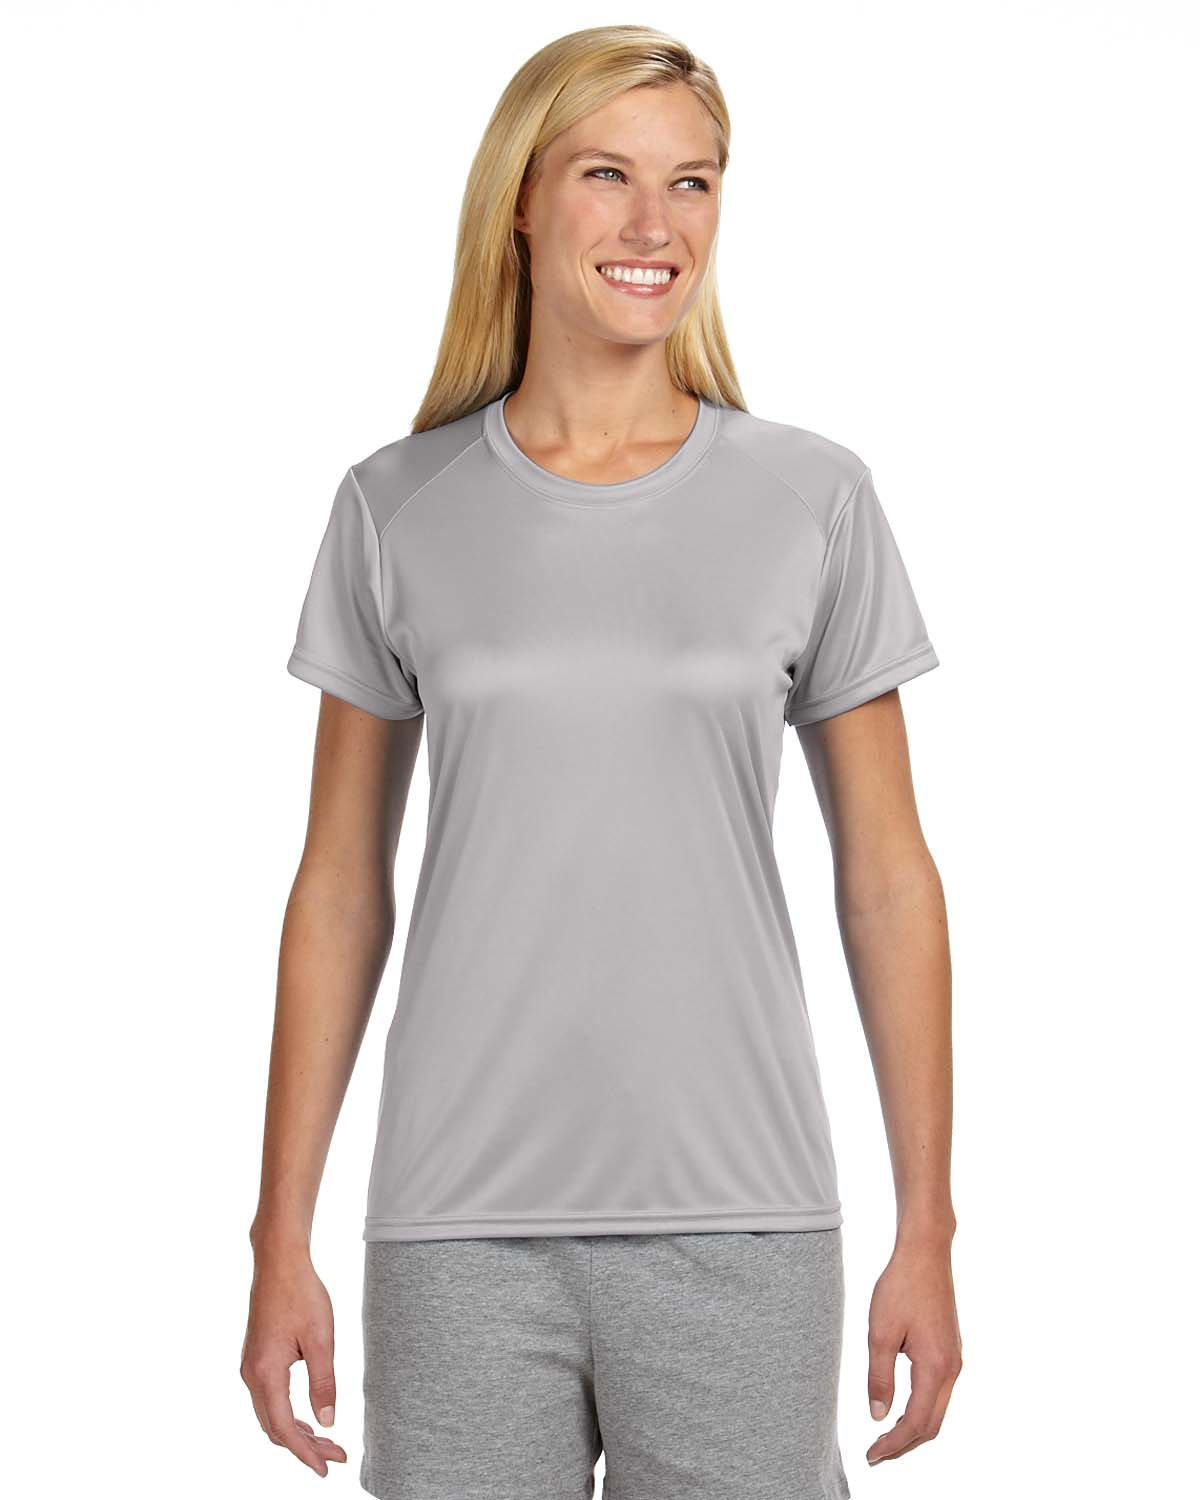 A4 Ladies Short-Sleeve Cooling Performance Crew